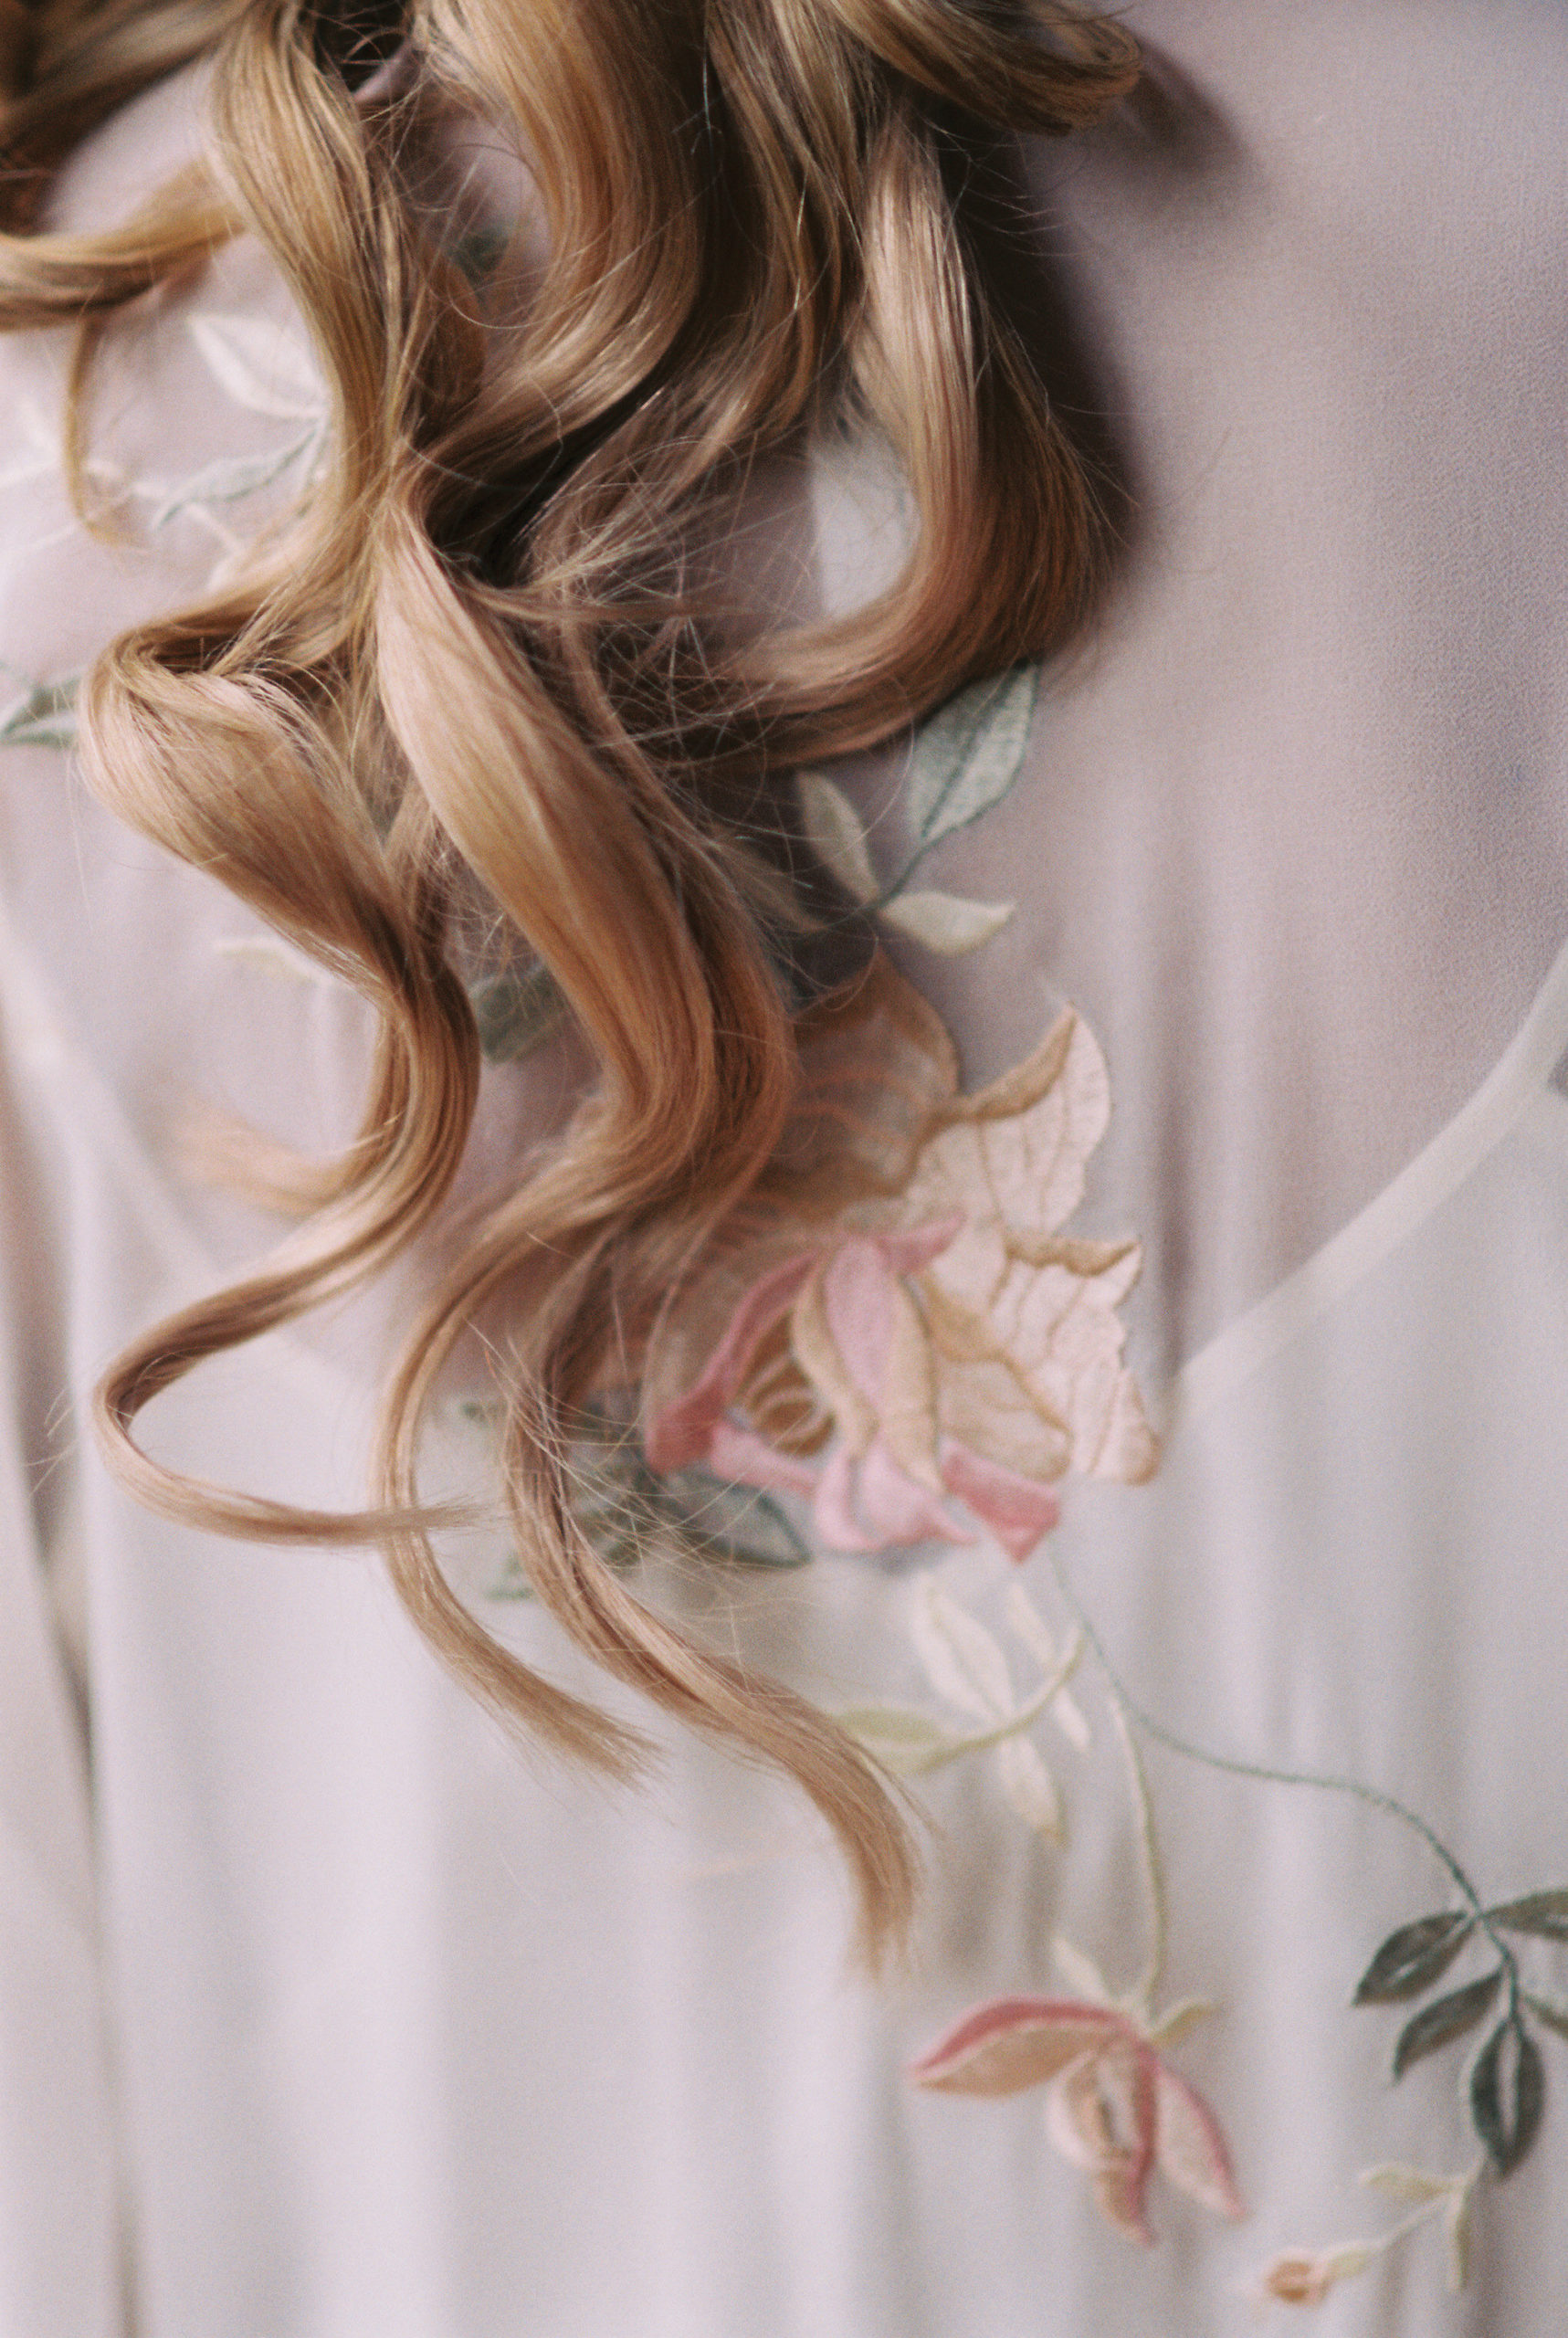 curls drapping